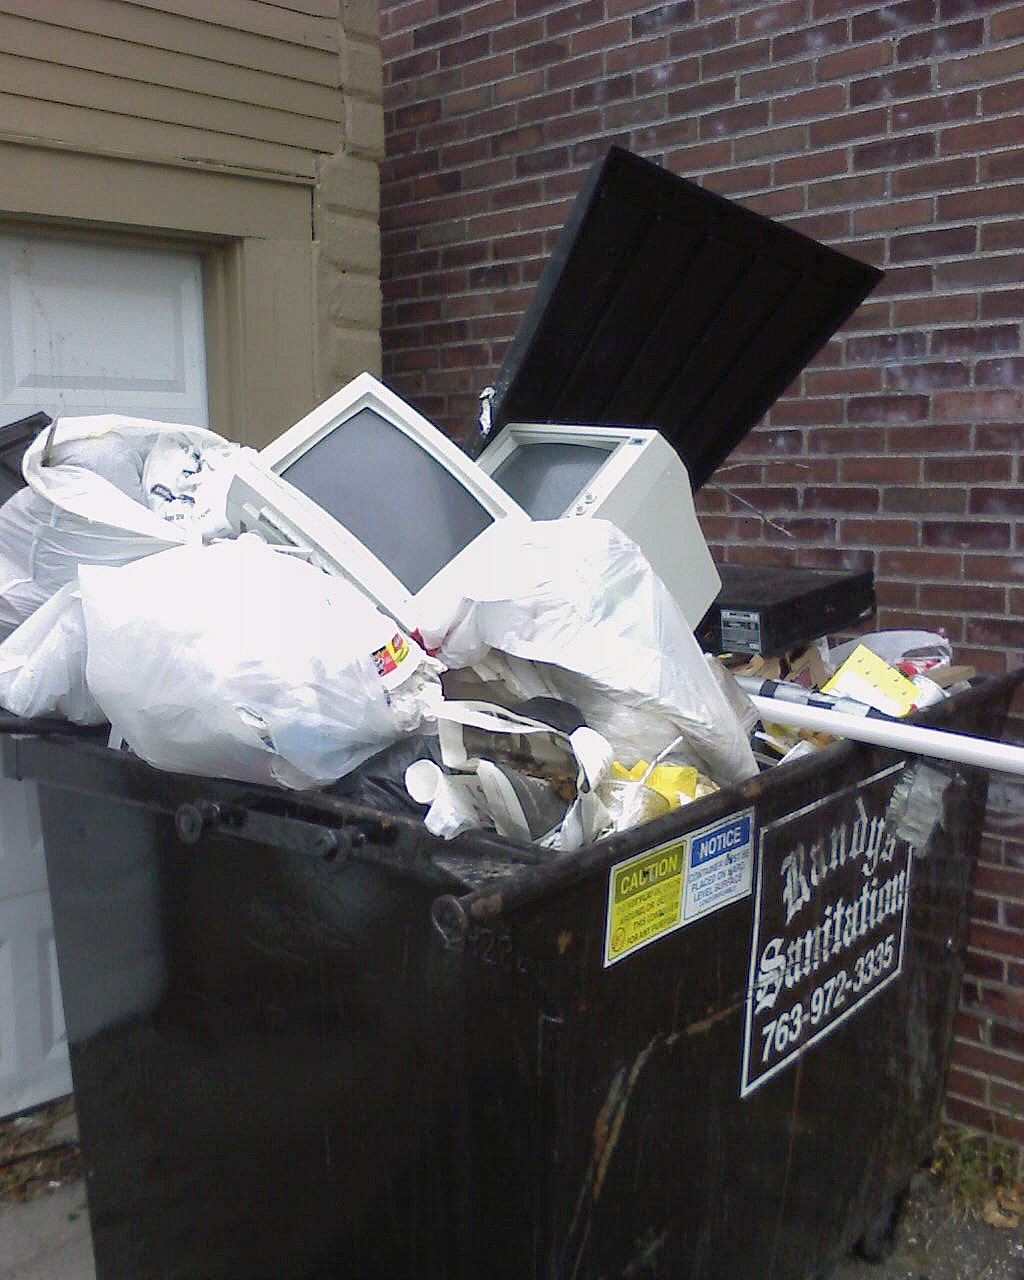 american trash analysis Analysis of crt televisions and monitor recycling in us households april 2014 the consumer electronics association (cea) conducted a national, quantitative study administered via telephone interviews to 1,023.